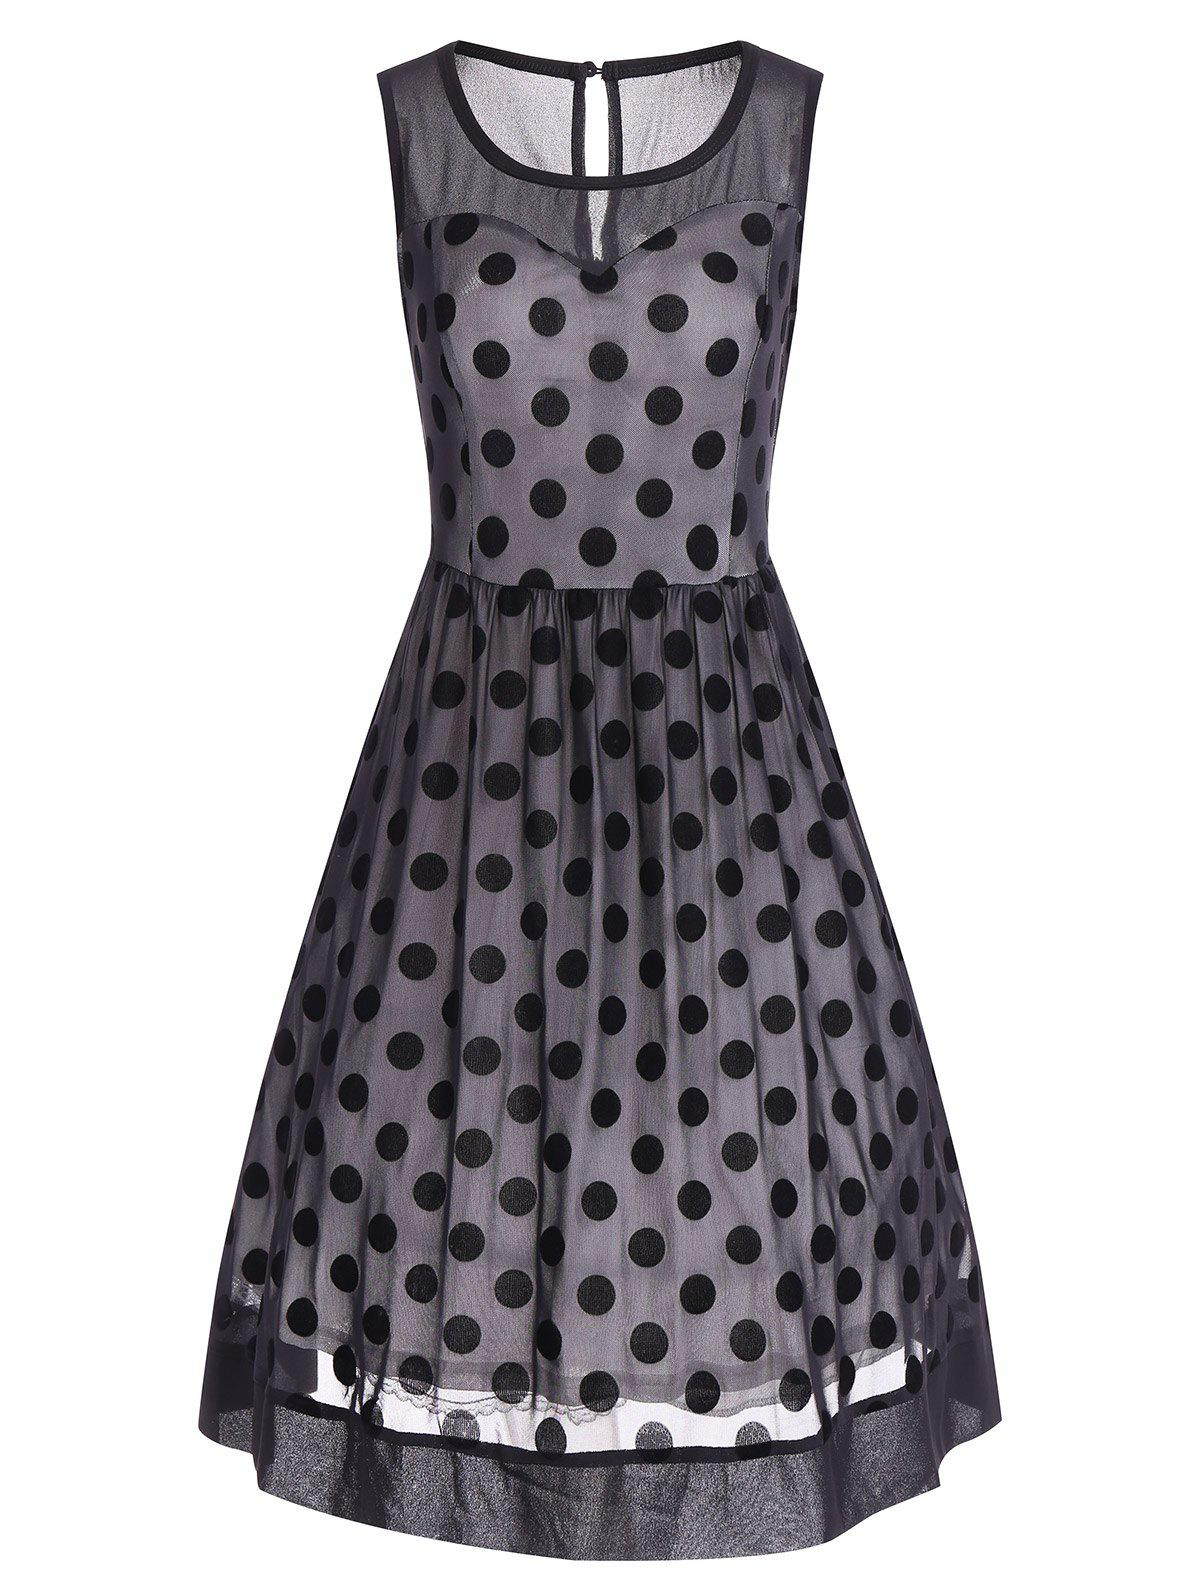 Summer Retro Polka Dot Mesh Yarn Insert Dress - BLACK S